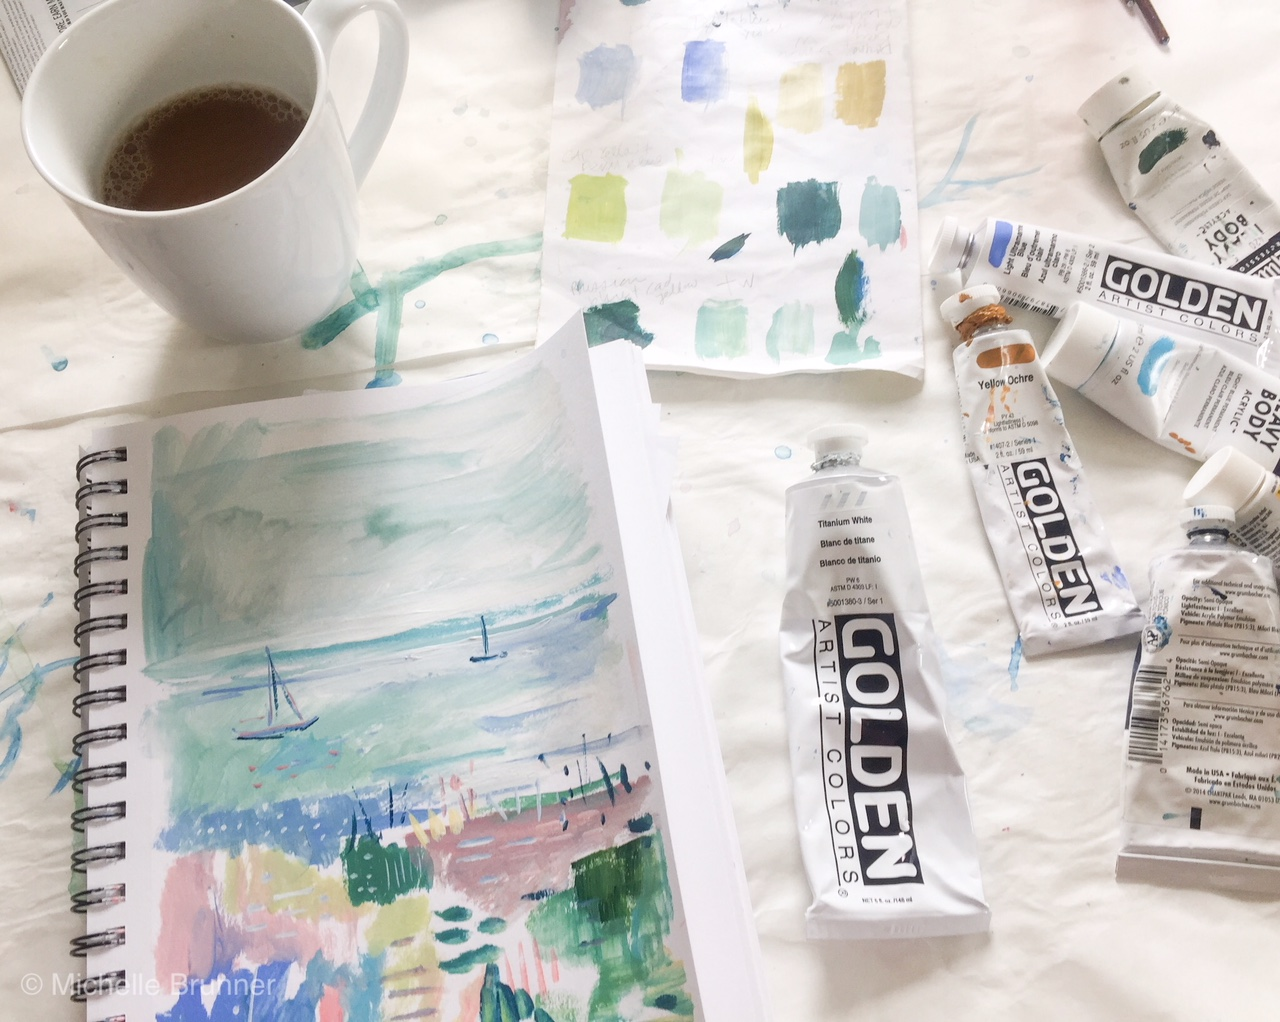 My sketchbook is a mixed media sketchbook and I use acrylics. Coffee and good music is also an important component to the daily sketch!